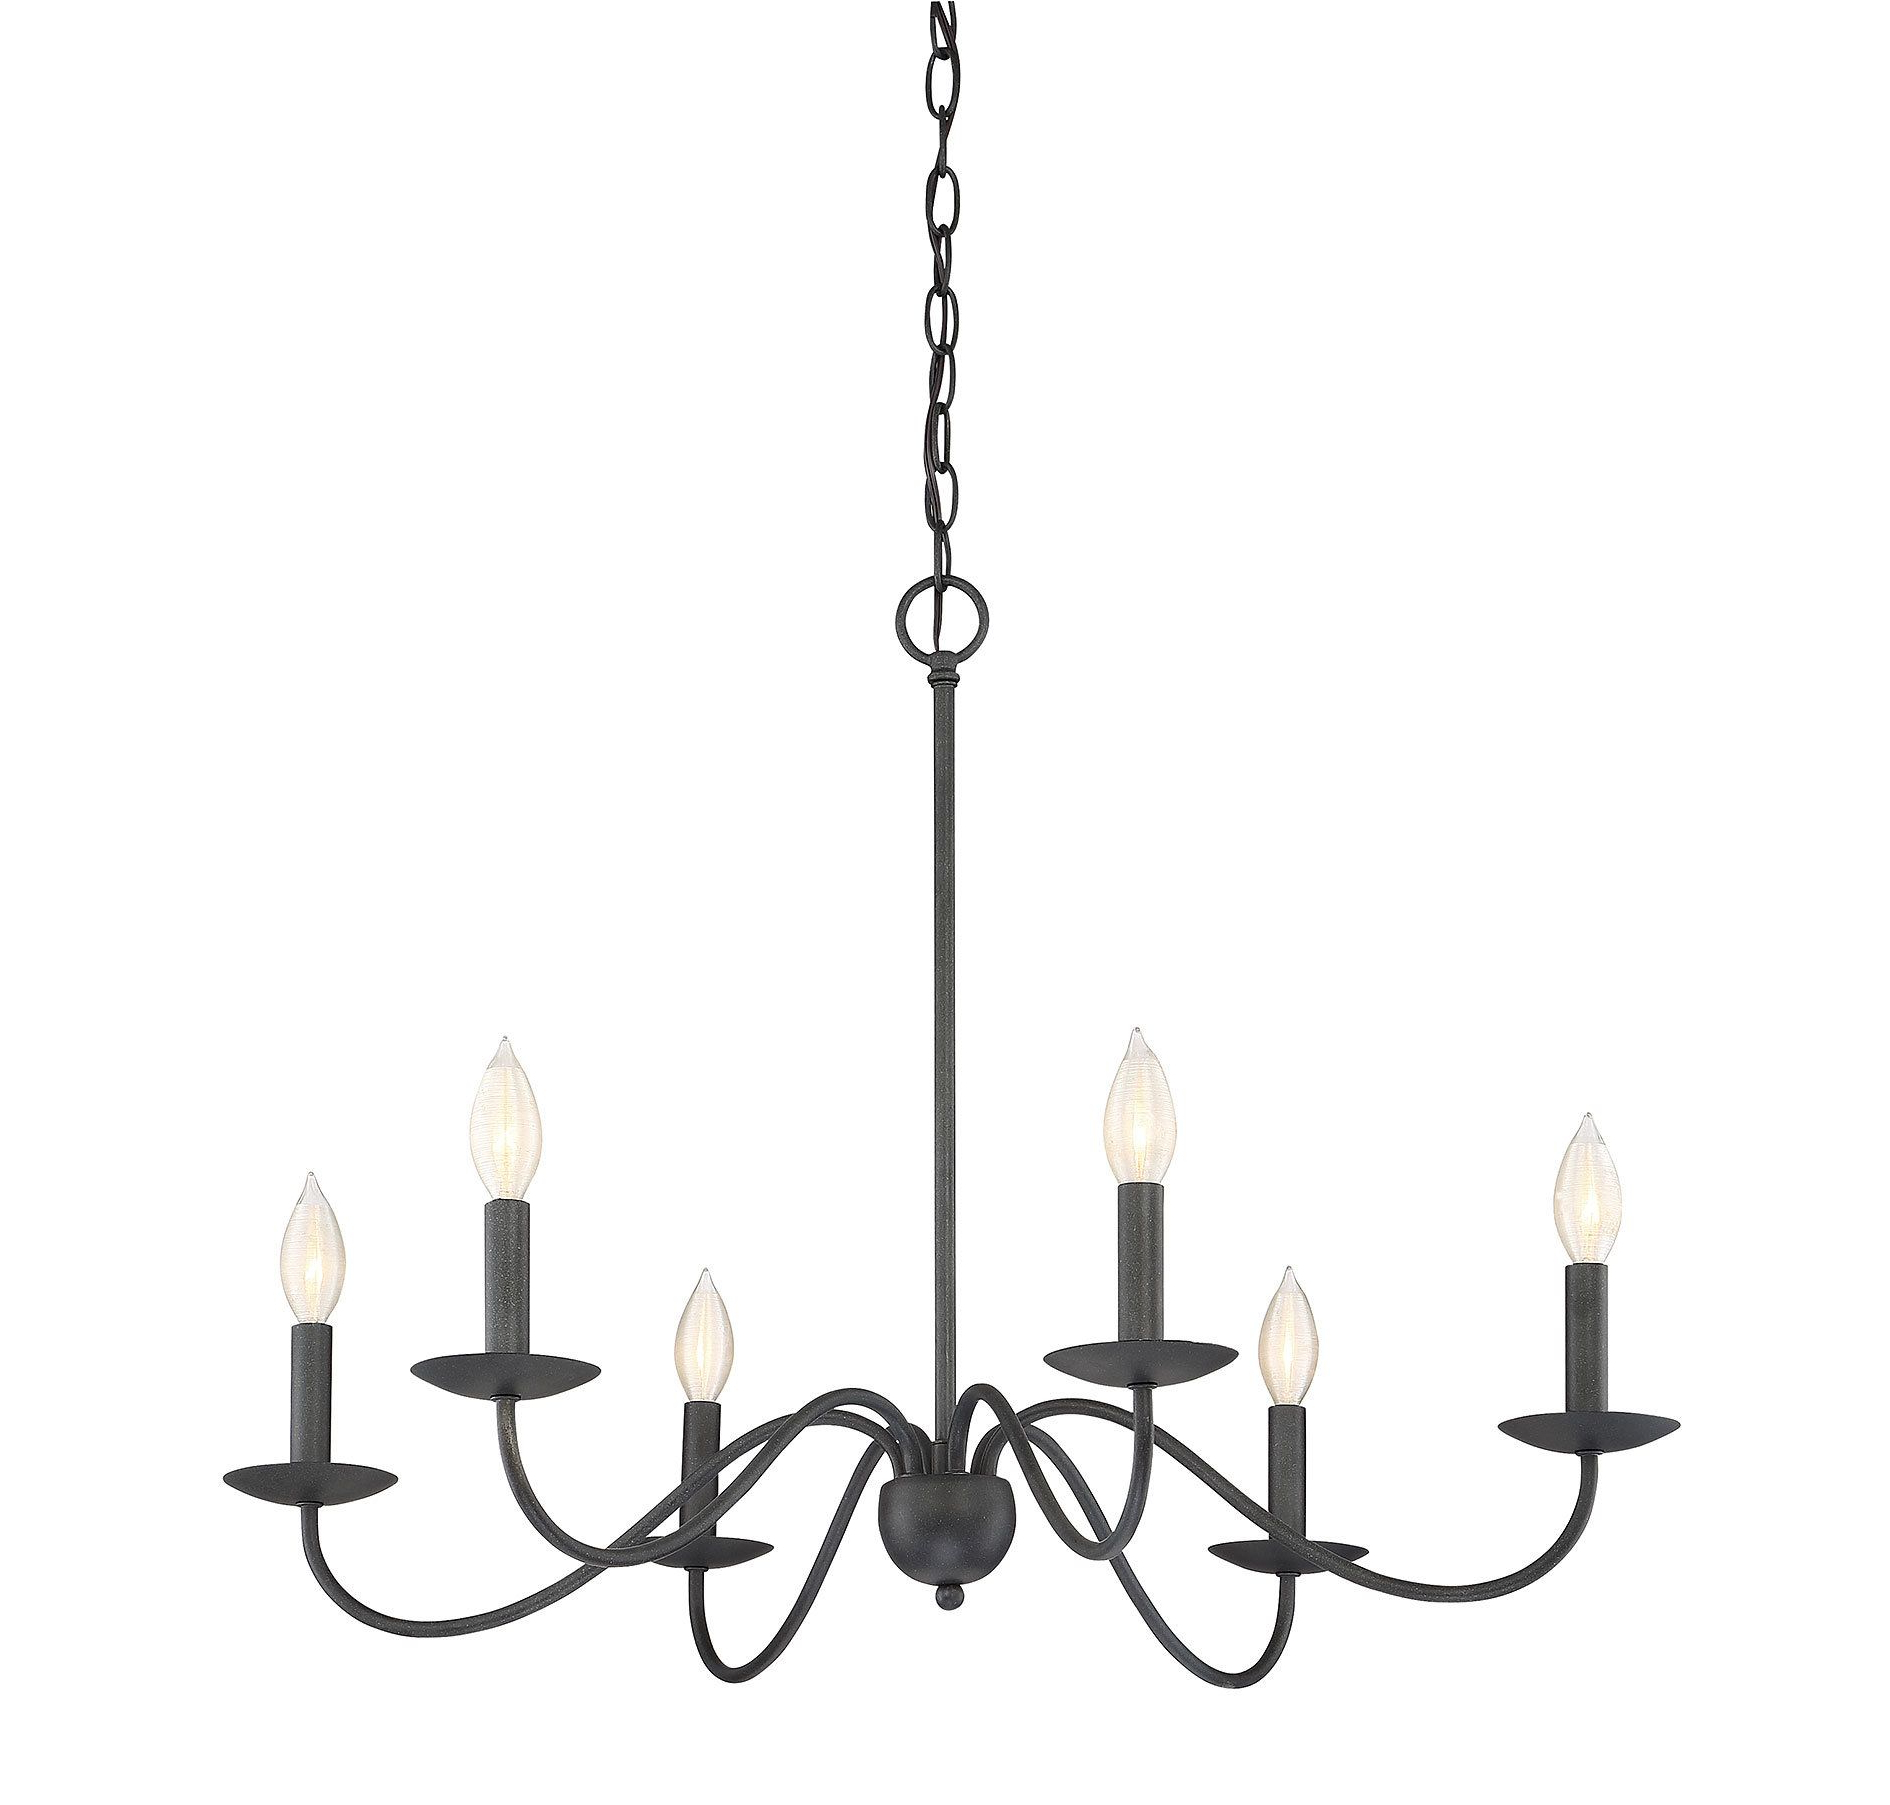 Products For Widely Used Perseus 6 Light Candle Style Chandeliers (View 4 of 20)